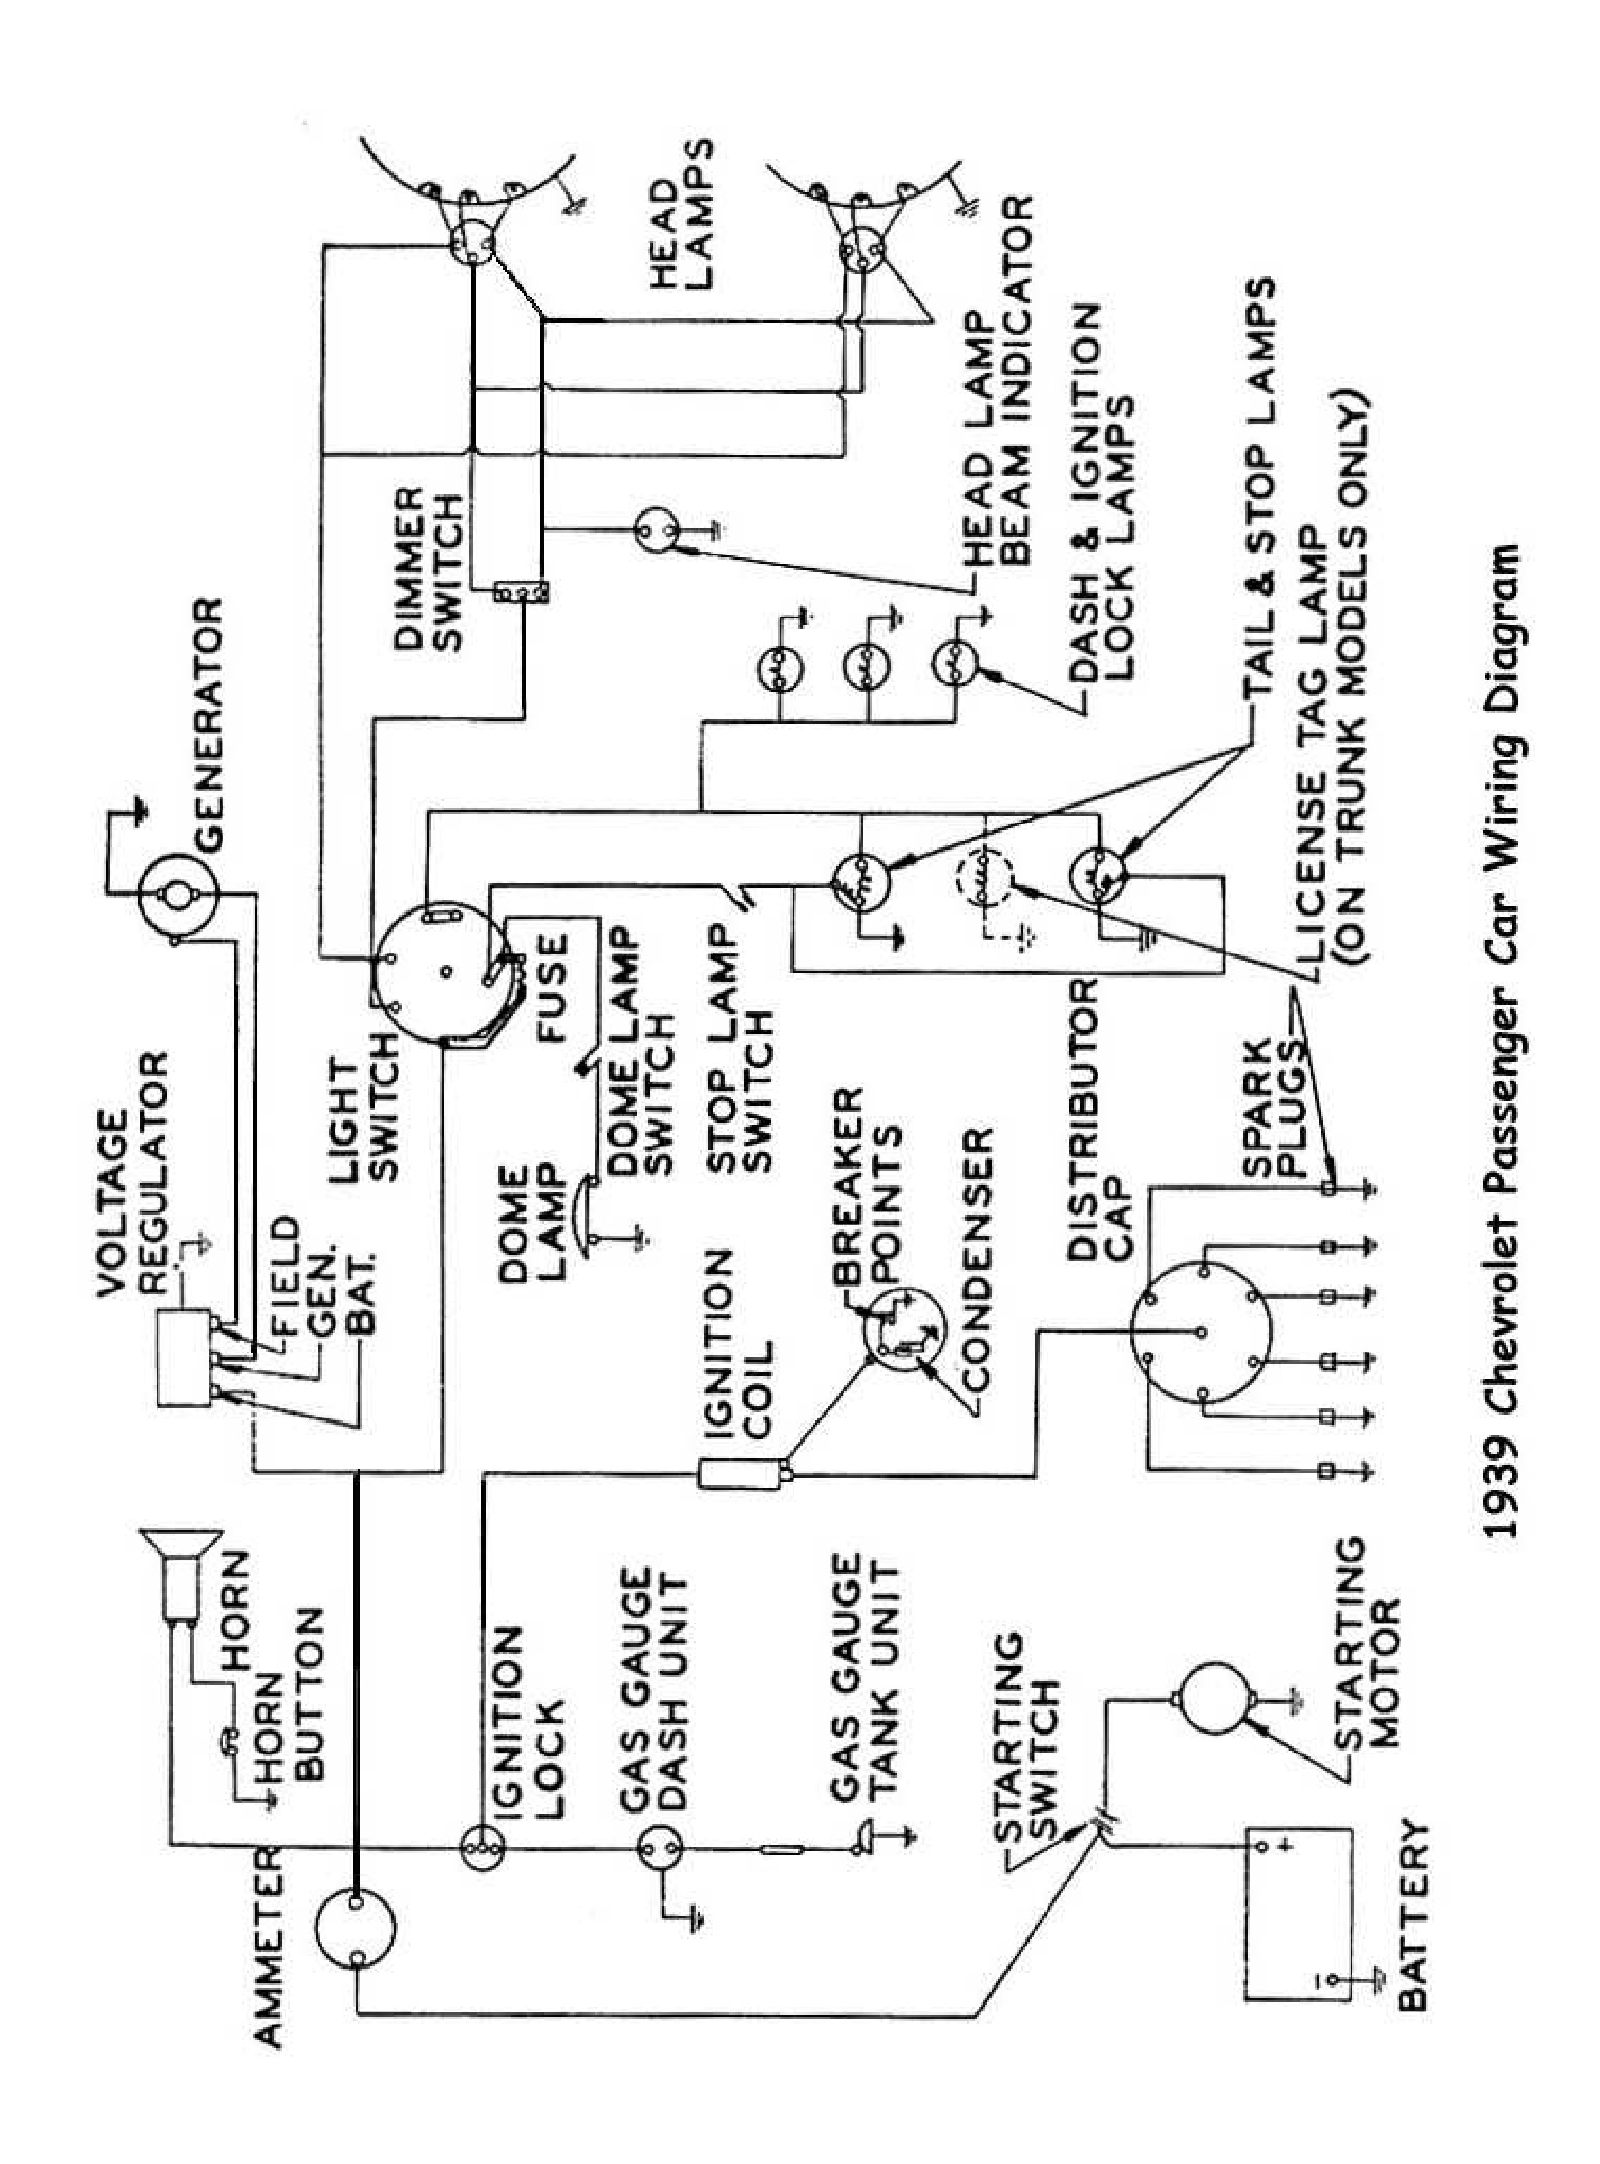 1952 John Deere B Wiring Diagram in addition Wiring Diagram For John Deere L120 Mower The Wiring Diagram 2 besides John Deere L130 Pto Wiring Diagram as well 16614 John Deere Lt 133 Steering Problems as well Electric Pto Clutch Wiring Diagram. on john deere l120 electrical diagram